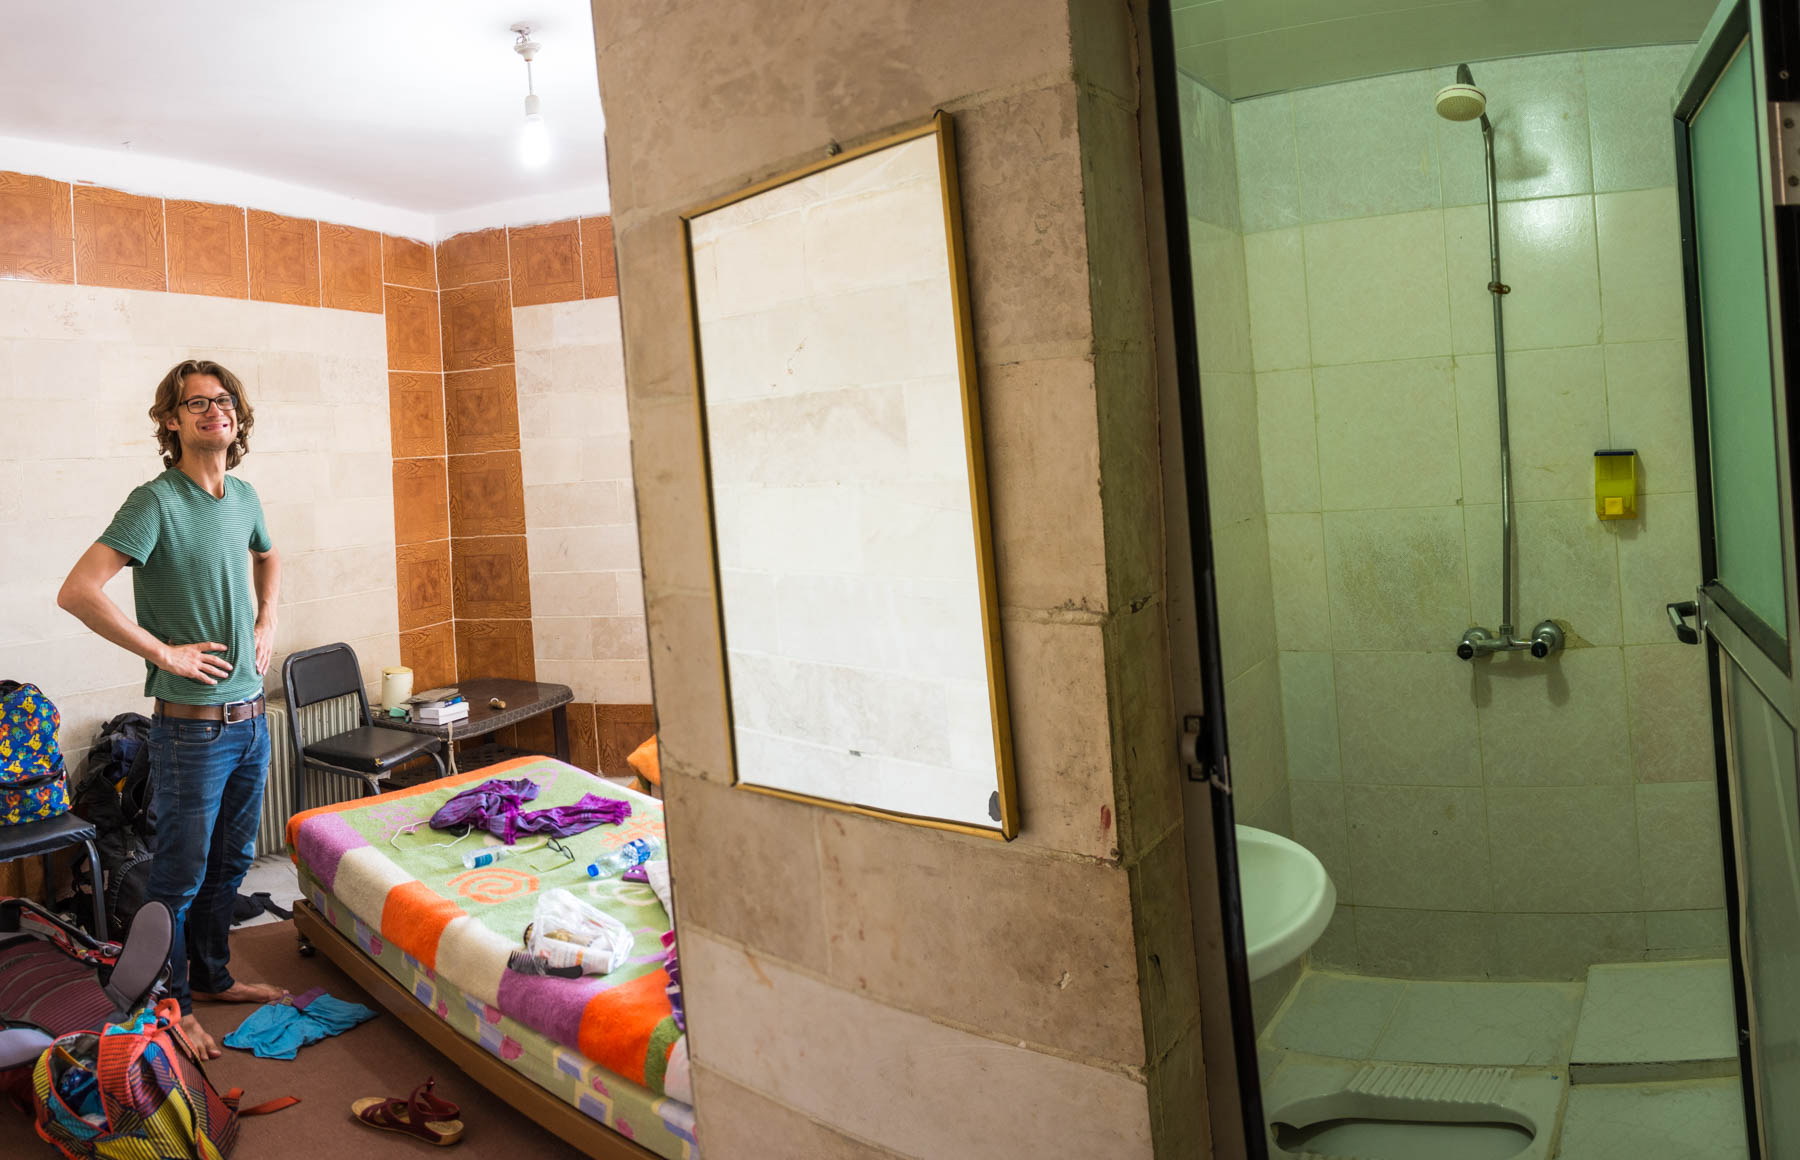 I'm foreign, so I must be rich: that's why I stayed in this grubby cheap hotel room in Sanandaj, Iran.